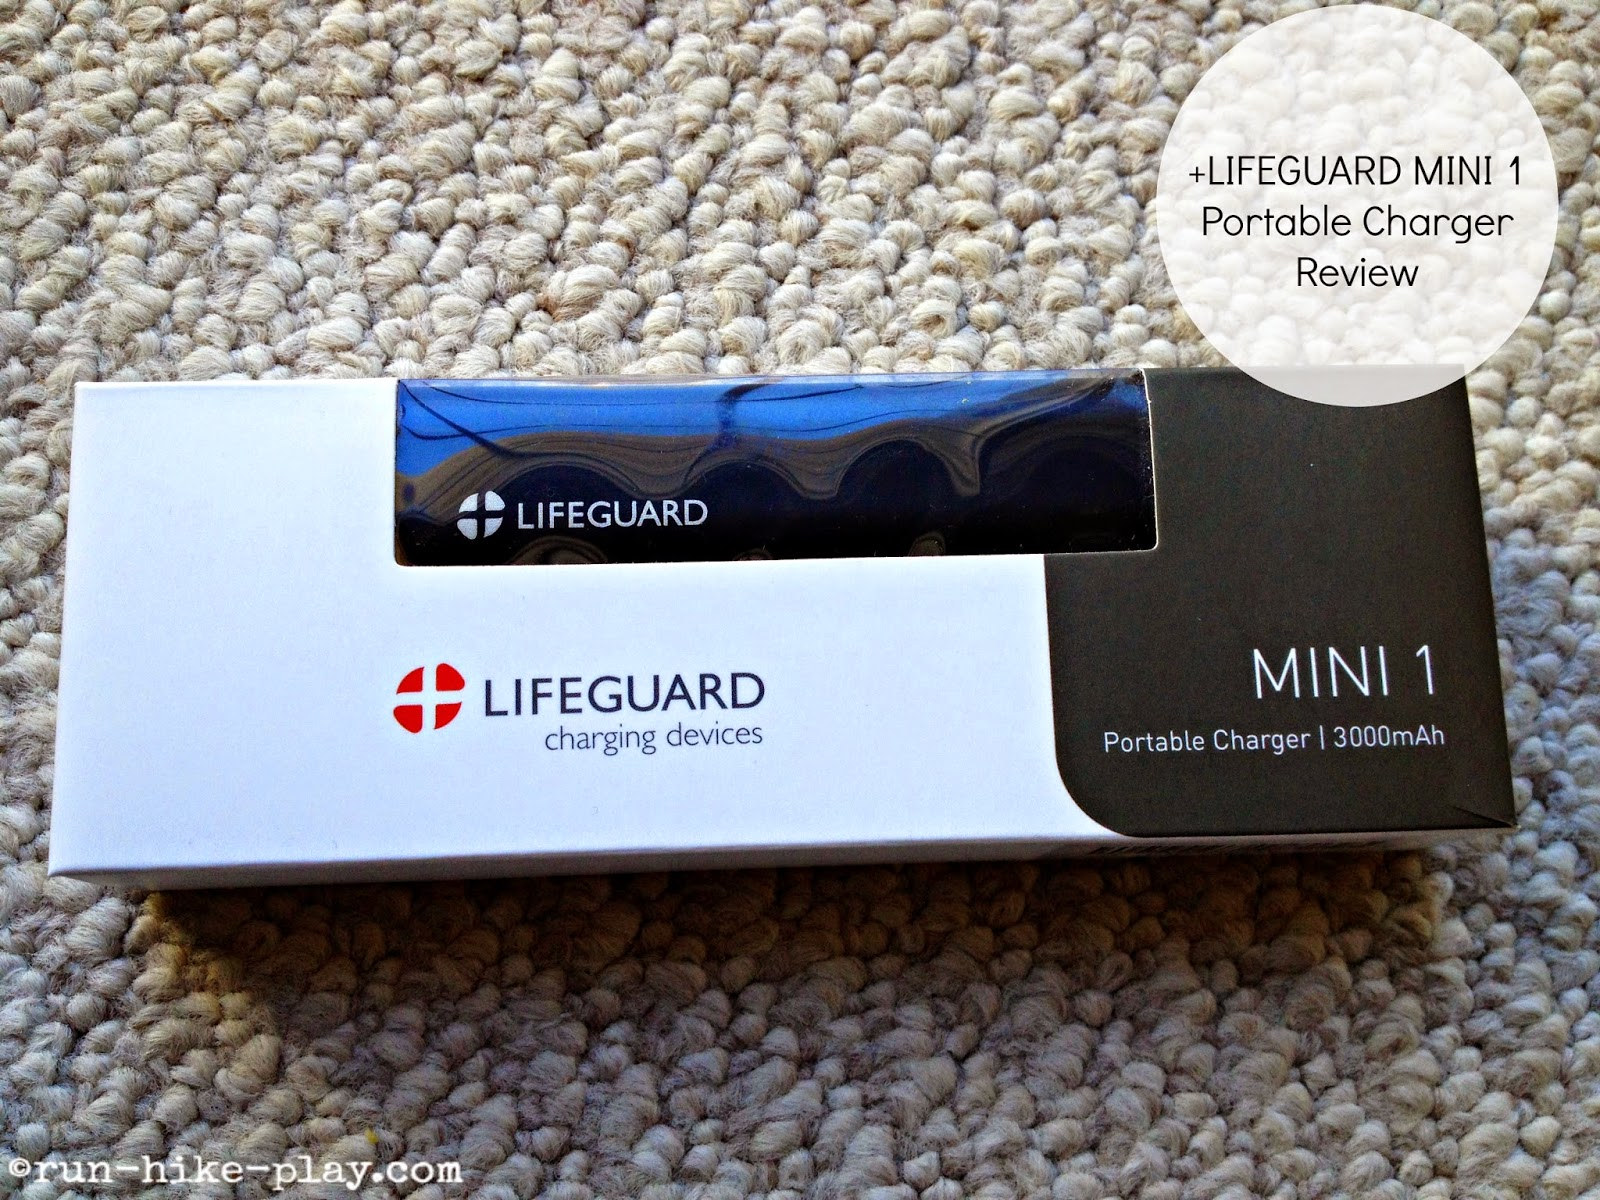 +Lifeguard Mini 1 Portable Charger Review